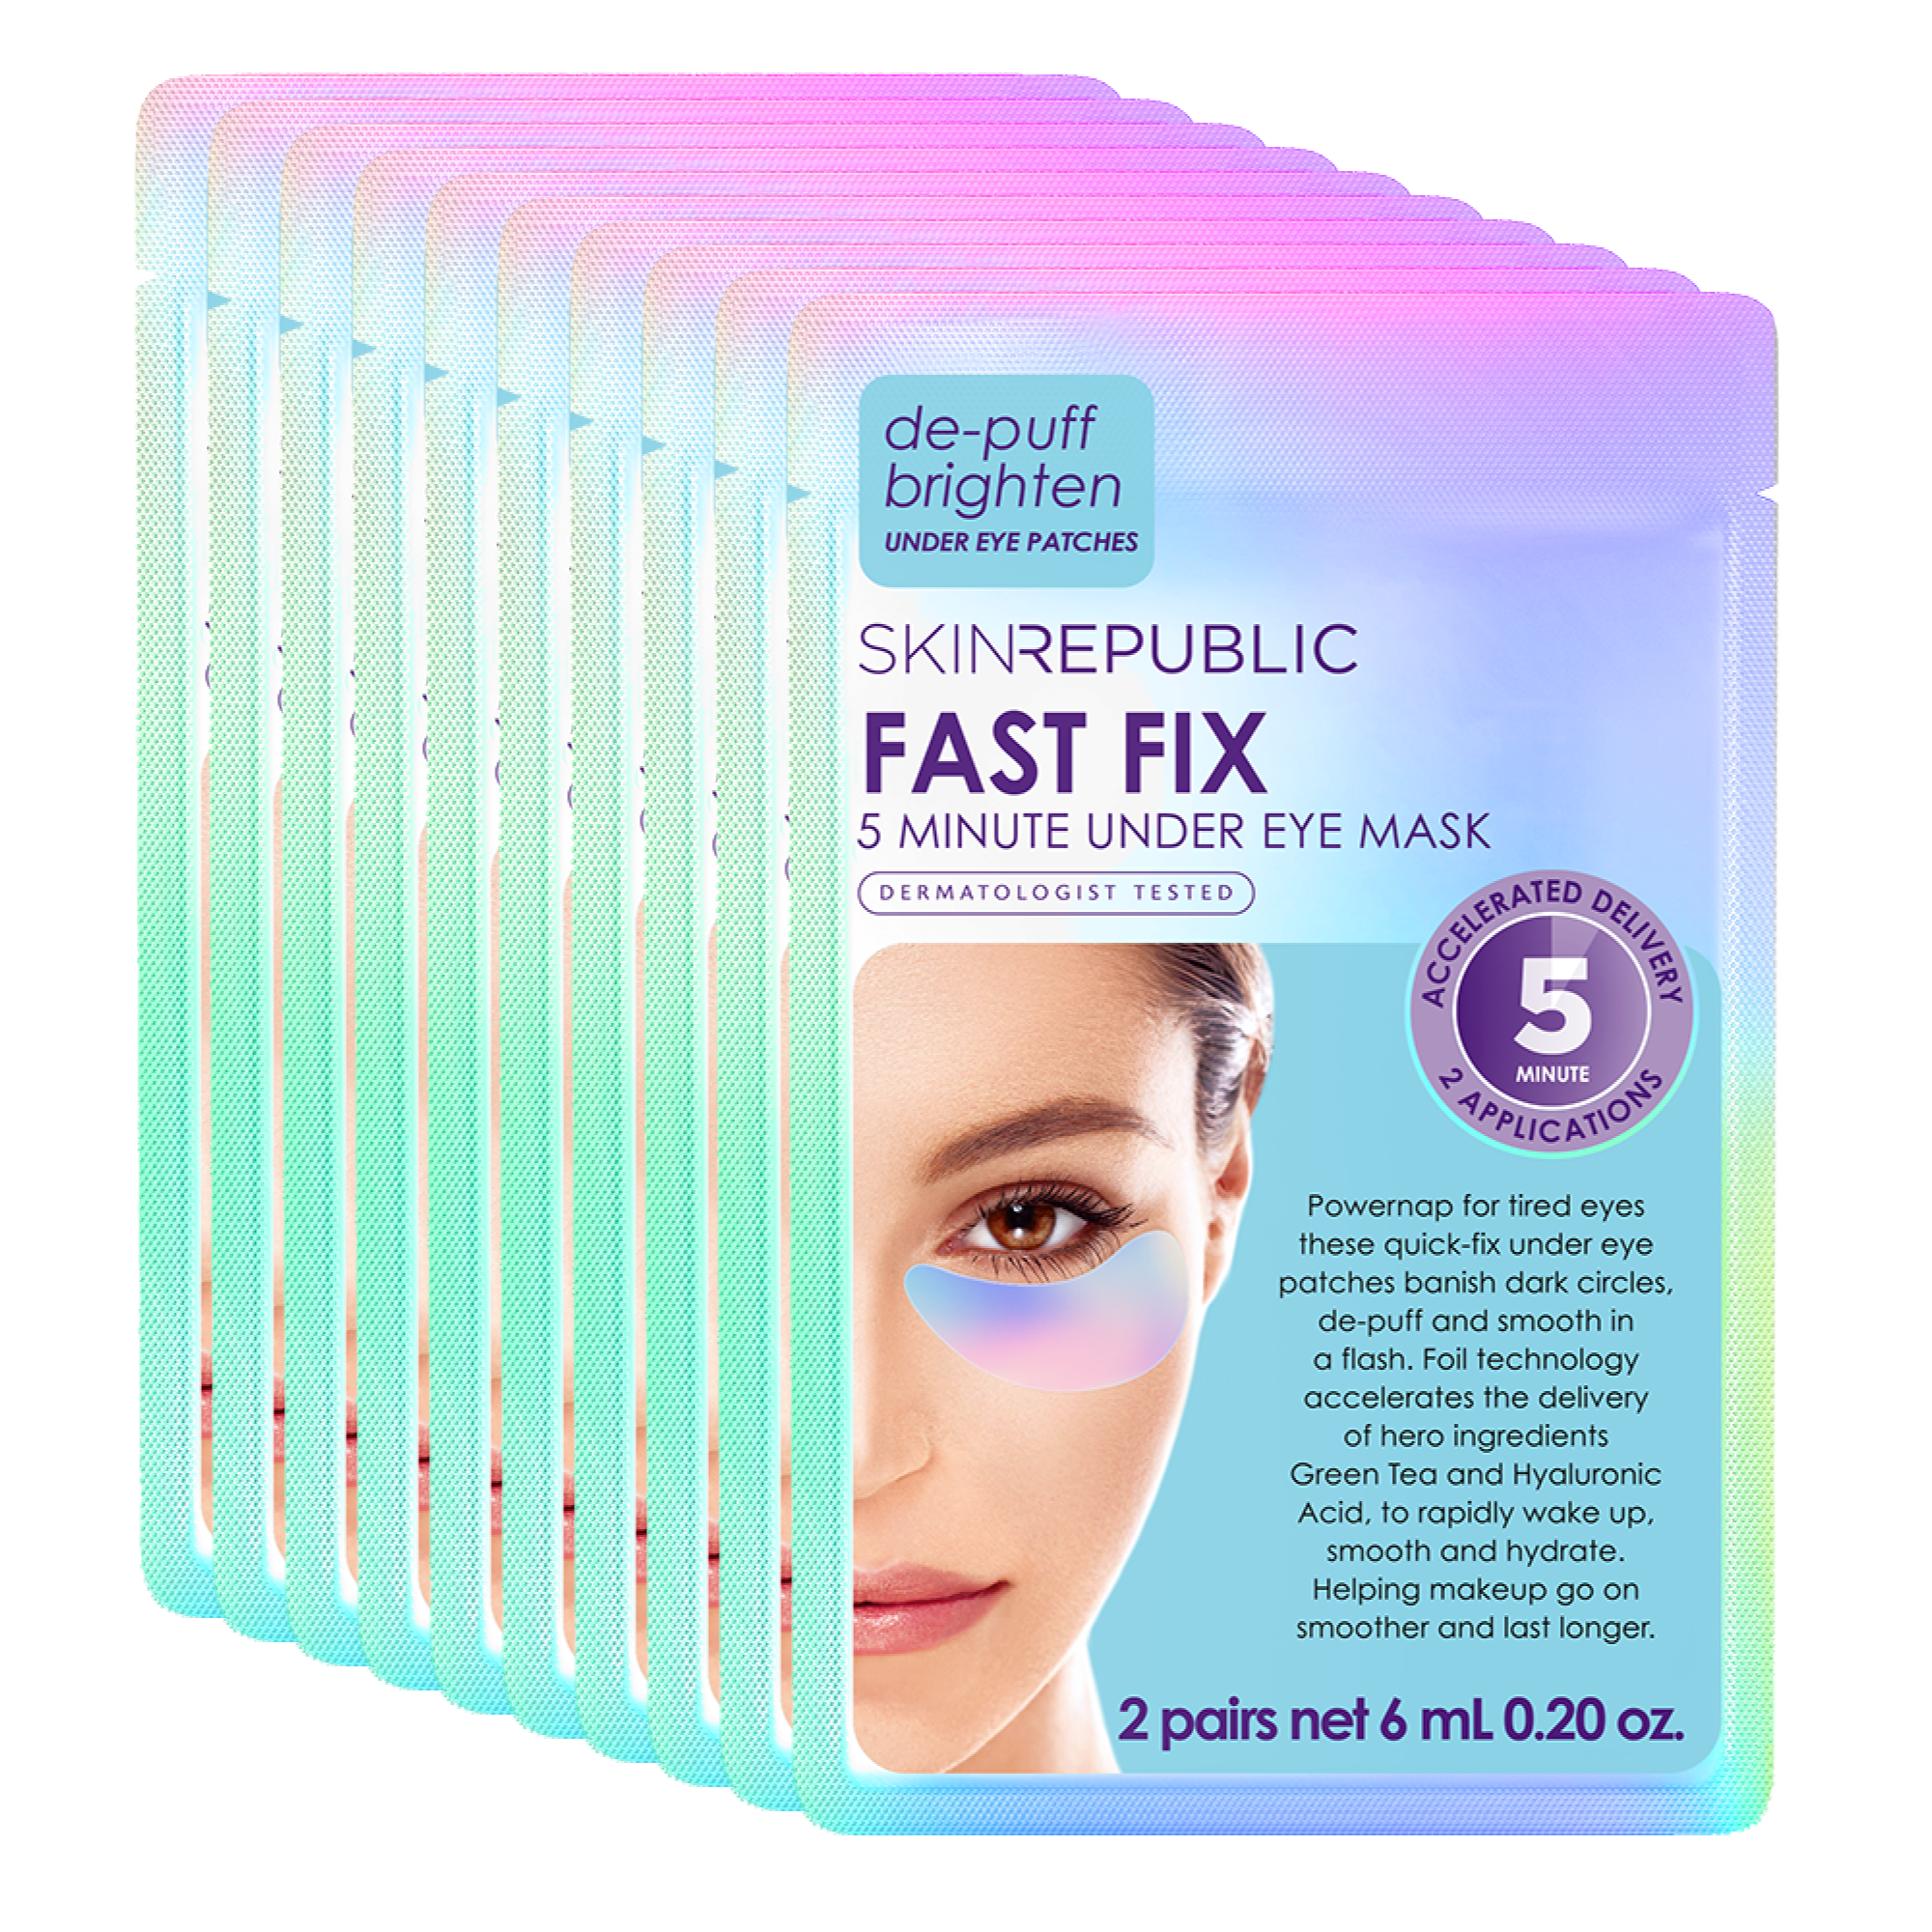 10 Pack Fast Fix 5 Minute Under Eye Mask (2 Pairs)